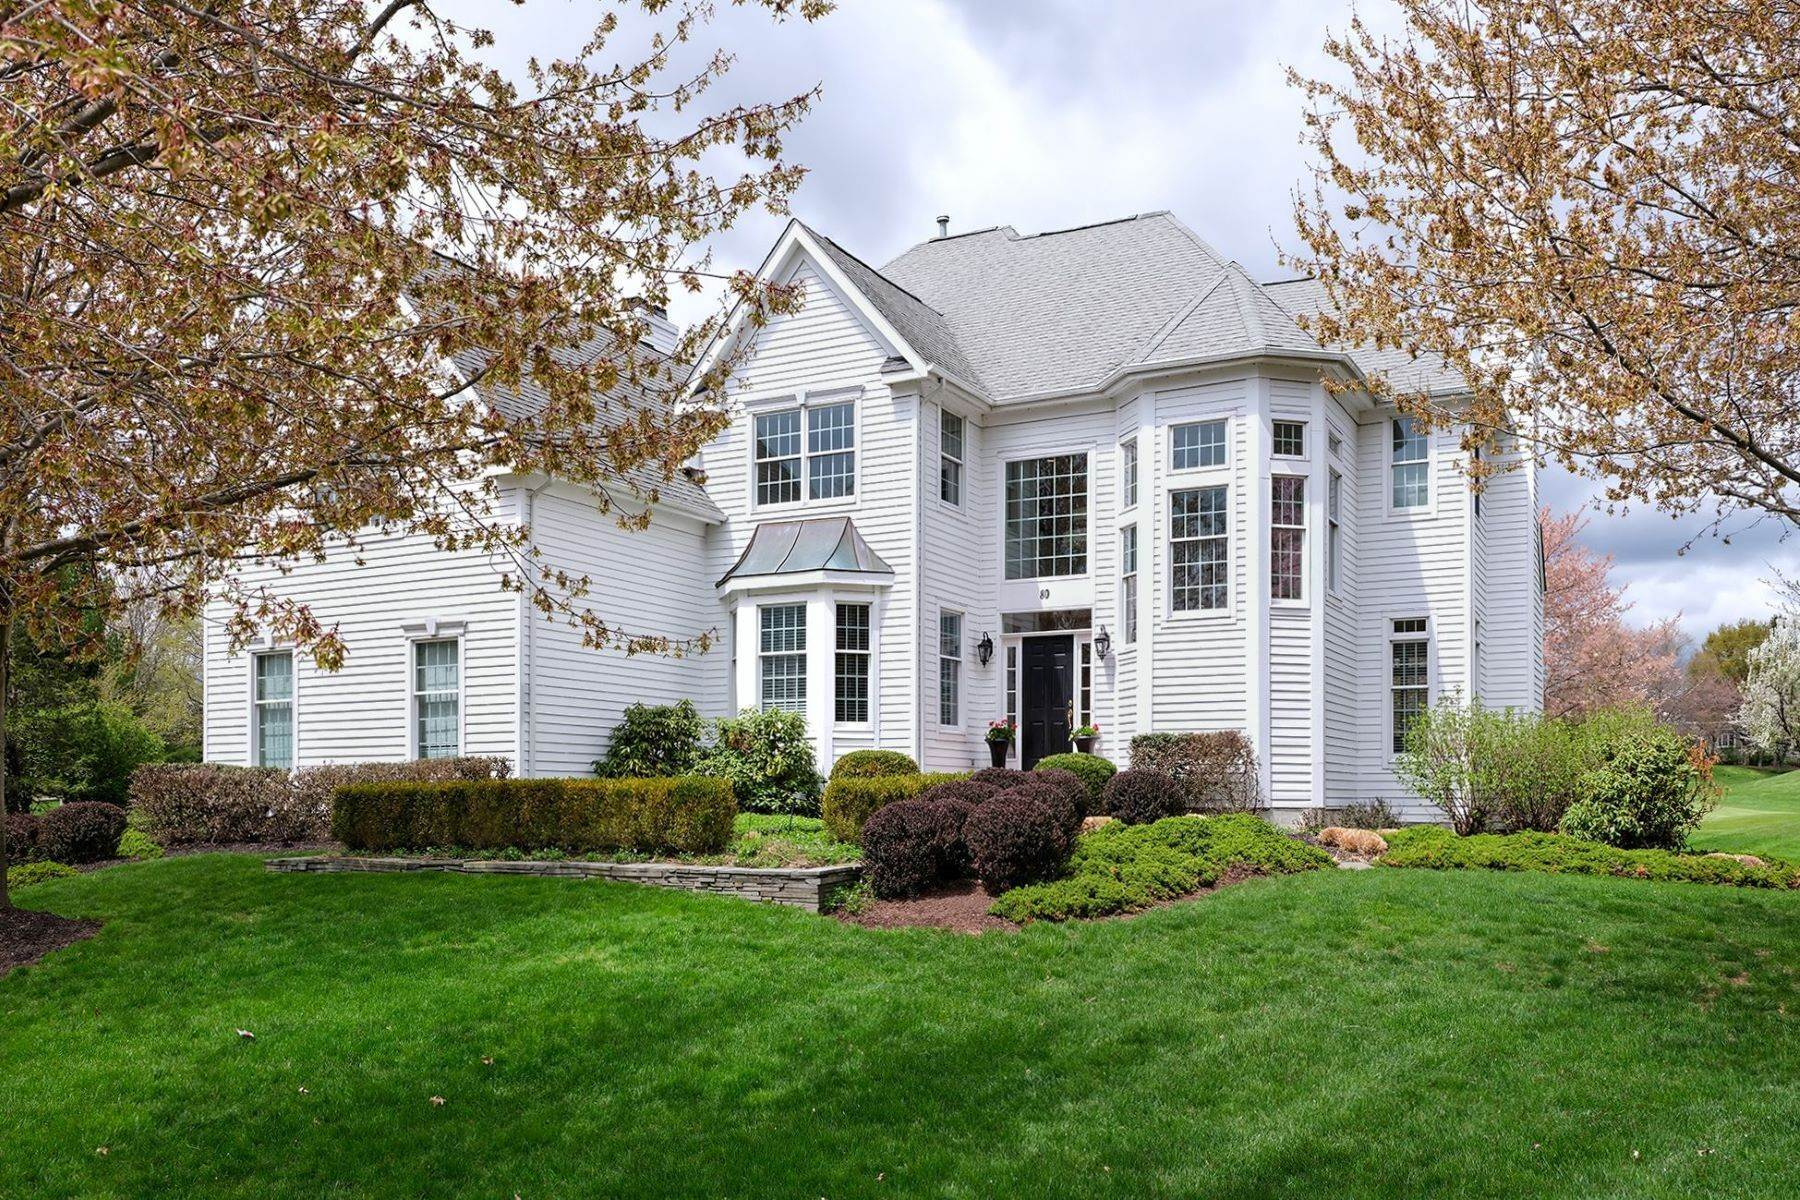 Single Family Homes for Sale at Resort Living In This Gorgeous Cherry Valley Home 80 John Blaw Drive Skillman, New Jersey 08558 United States